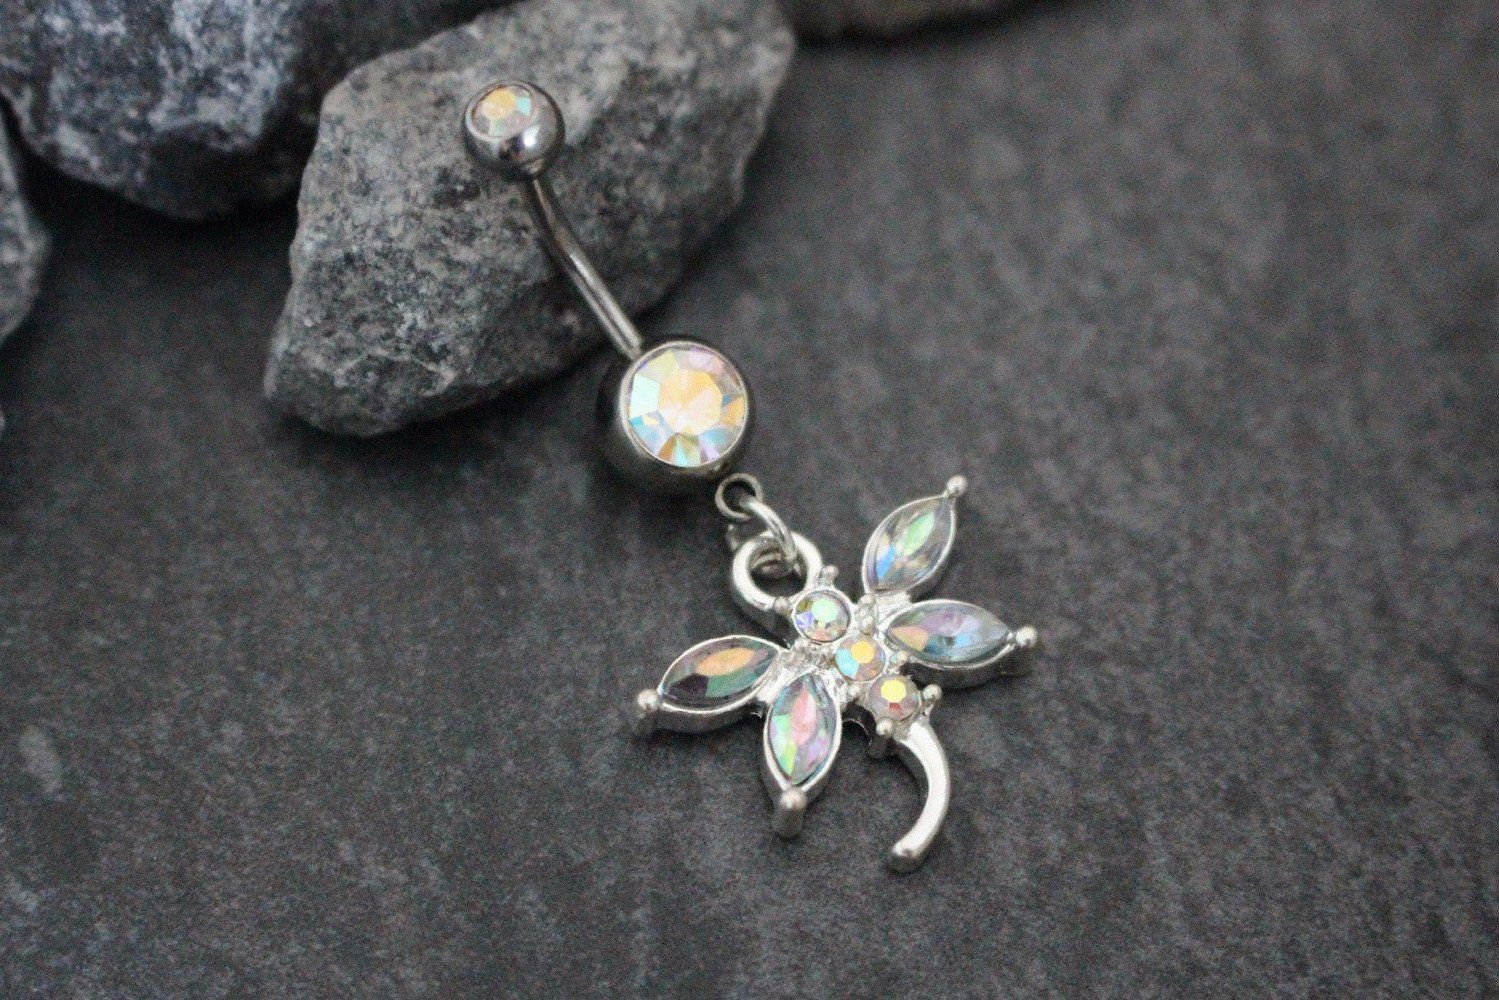 Gold belly piercing jewellery  Dragonfly Belly Ring  Dragonflies Navel and Belly button jewelry